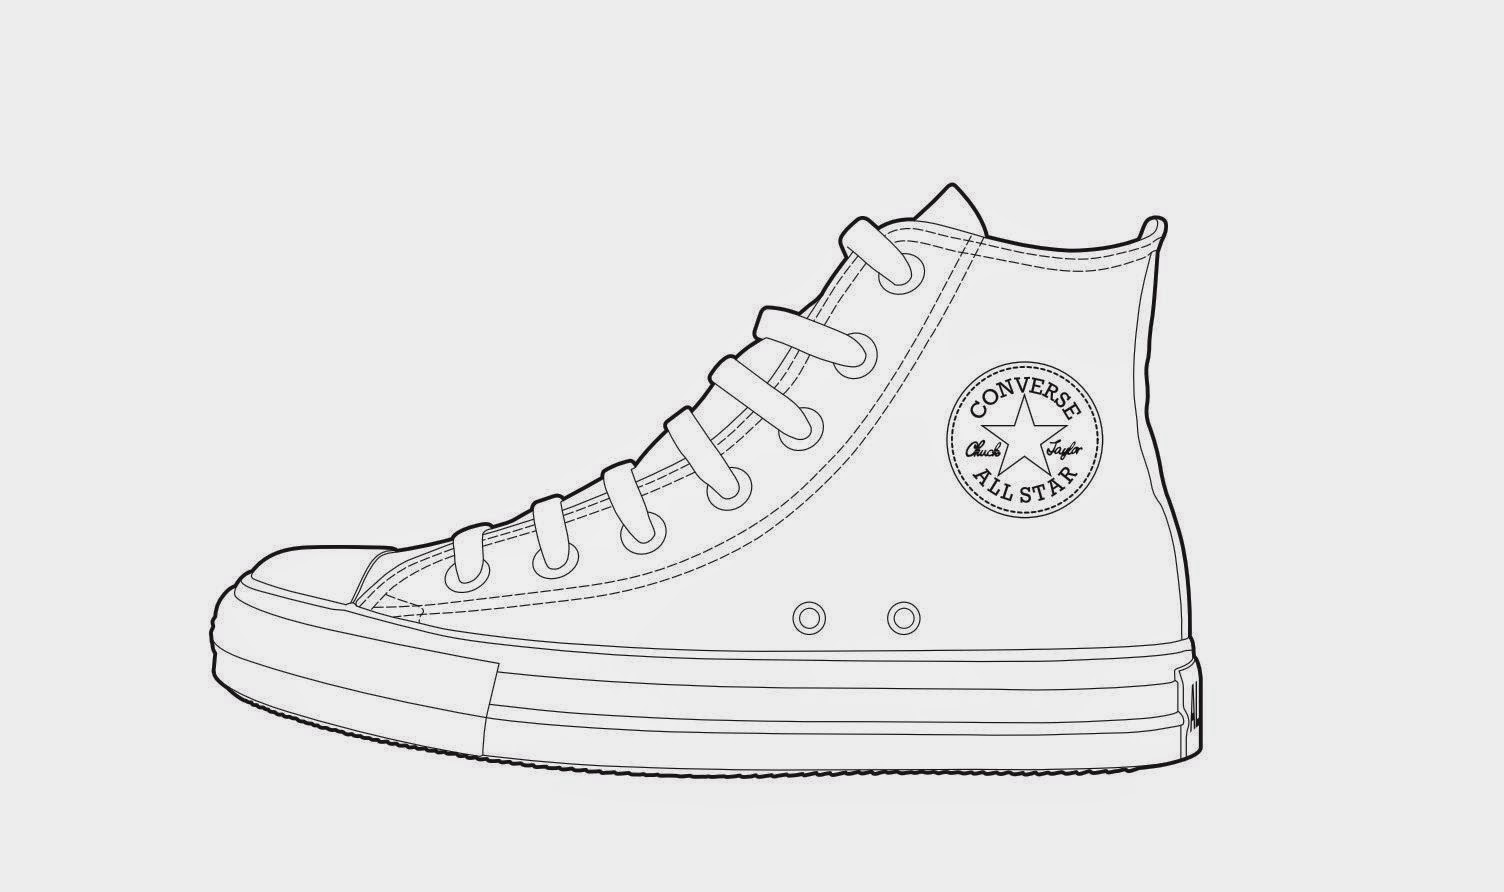 converse shoes clip art black and white abstract prints by thomp